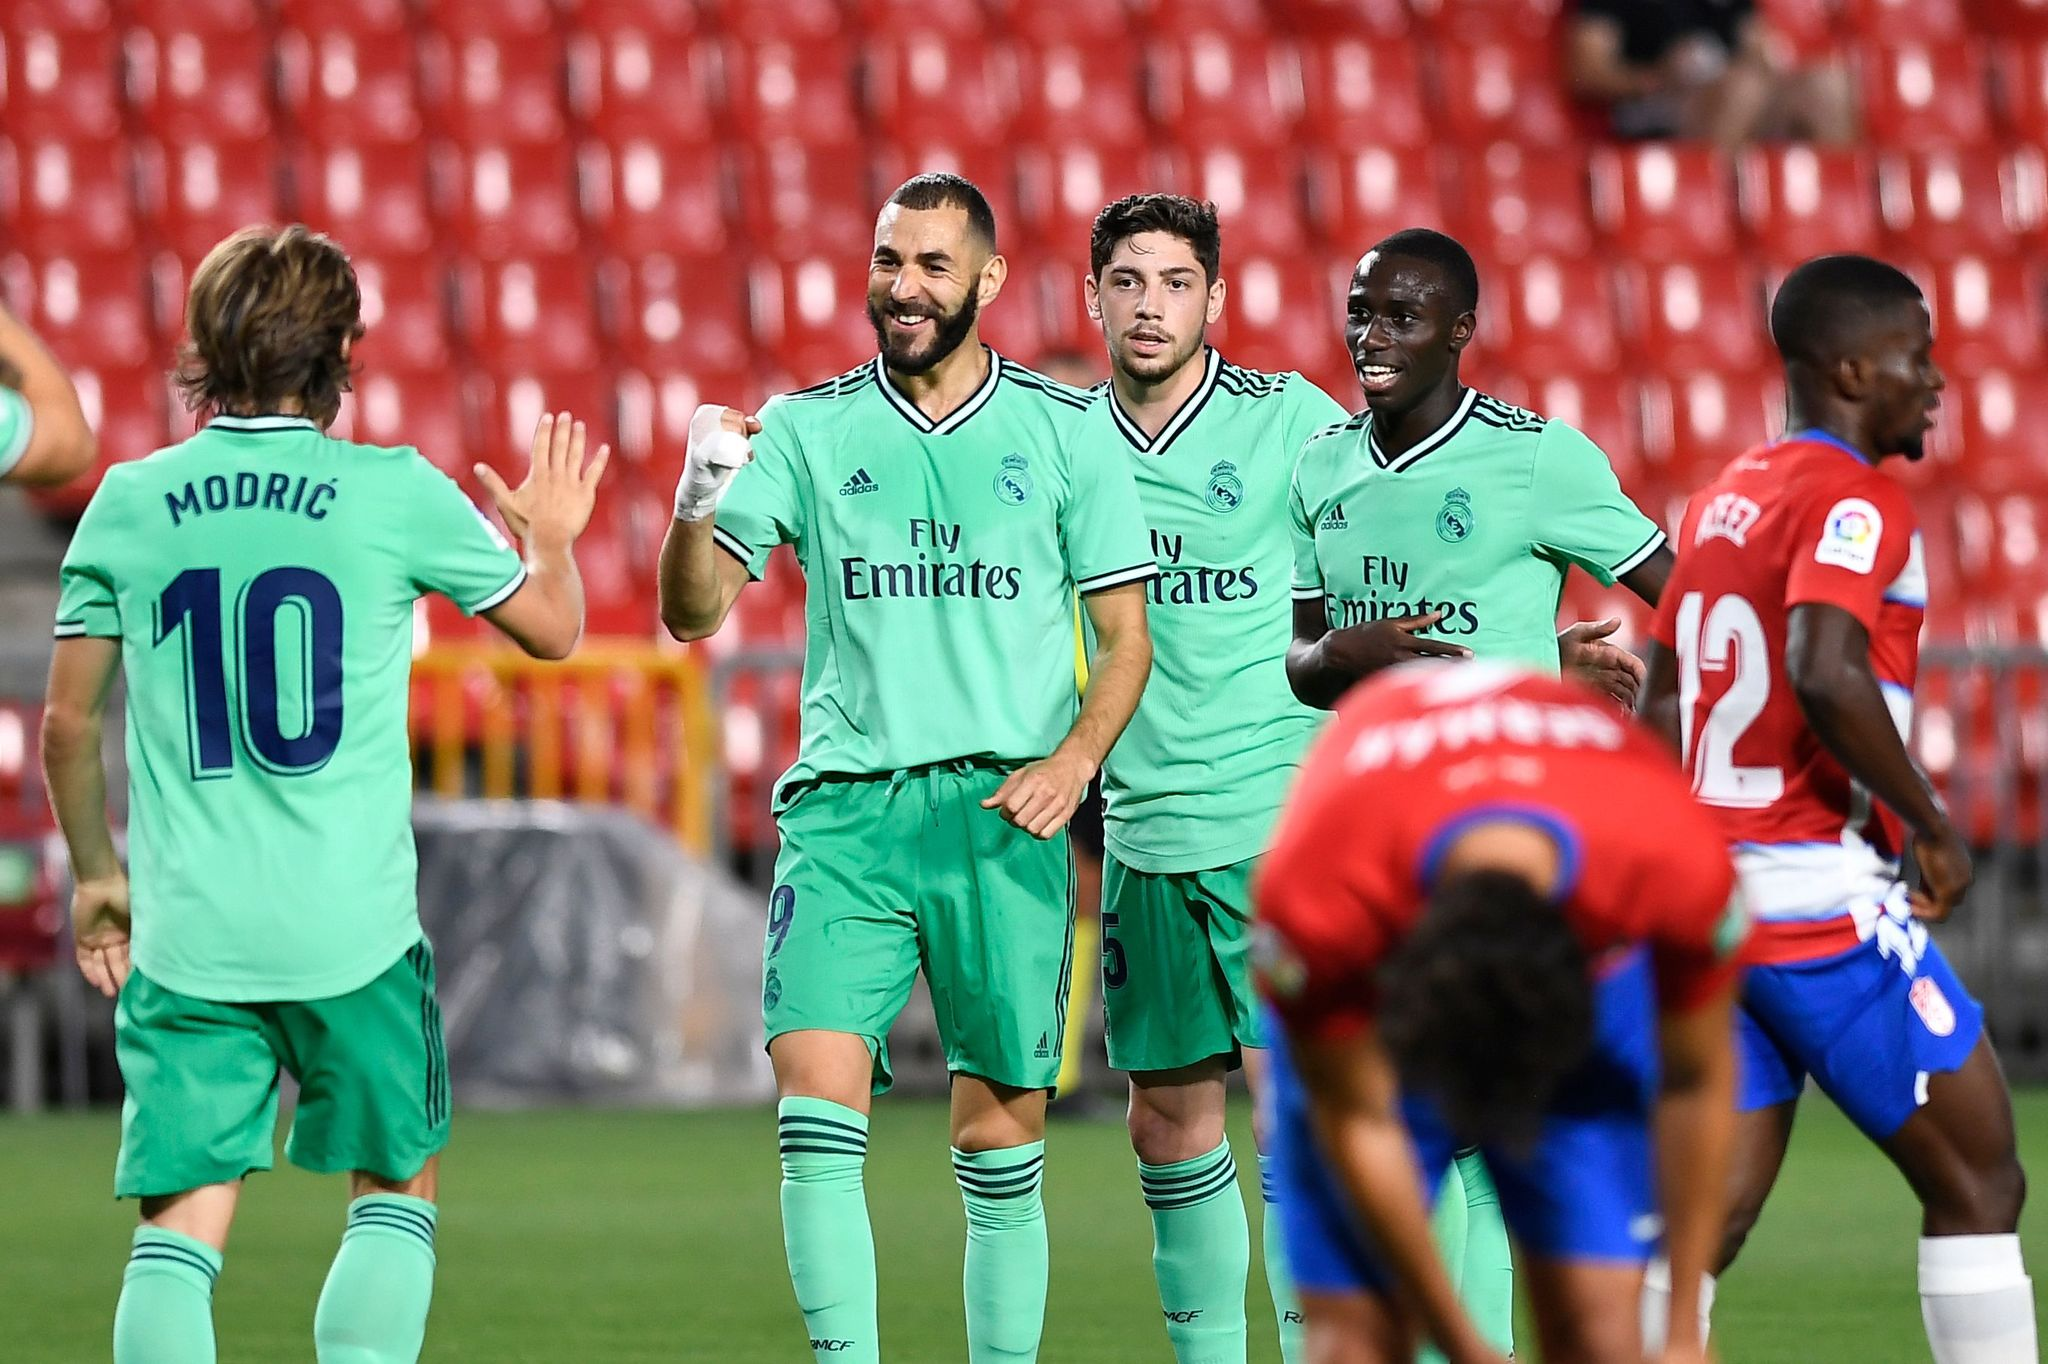 Real Madrids French forward Karim lt;HIT gt;Benzema lt;/HIT gt; (2L) celebrates after scoring during the Spanish league football match Granada FC vs Real Madrid CF at Nuevo Los Carmenes stadium in Granada on July 13, 2020. (Photo by JORGE GUERRERO / AFP)